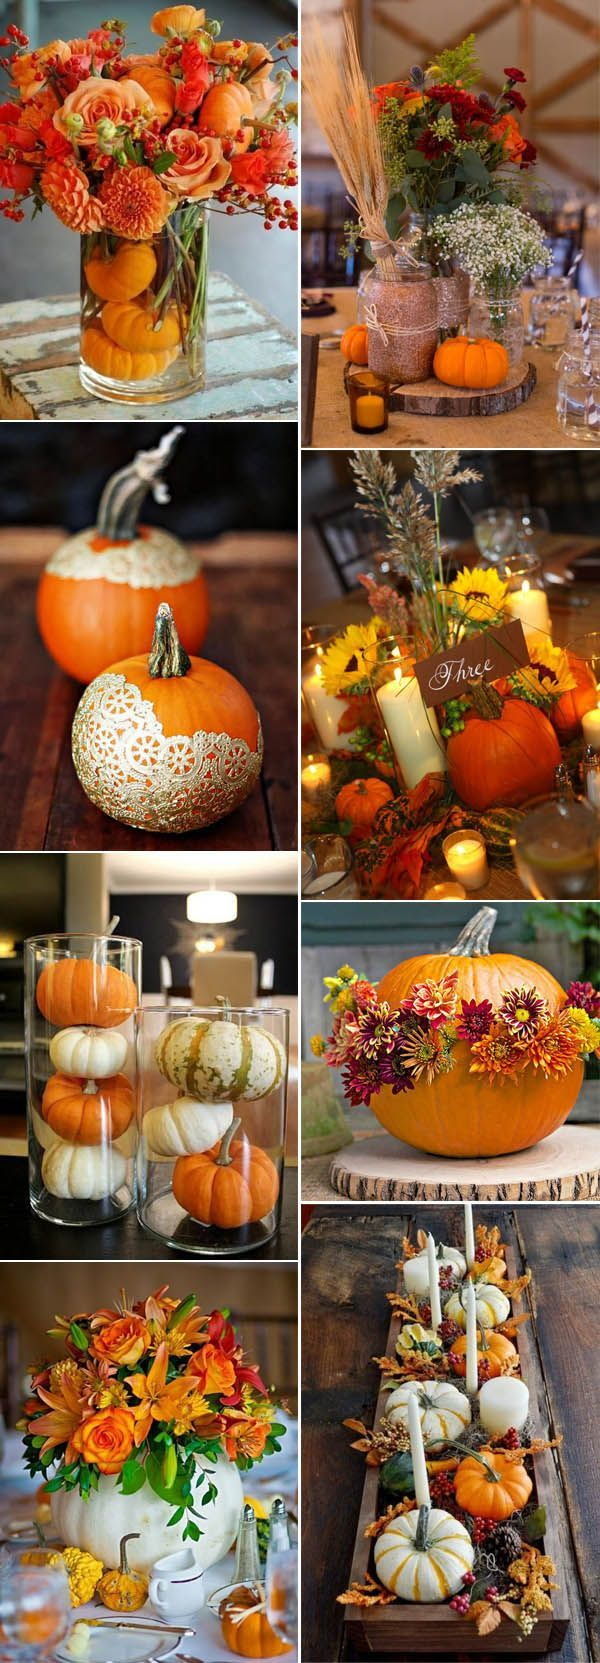 Doors pleasant fall decorating ideas for outside pinterest autumn - 46 Inspirational Fall Autumn Wedding Centerpieces Ideas